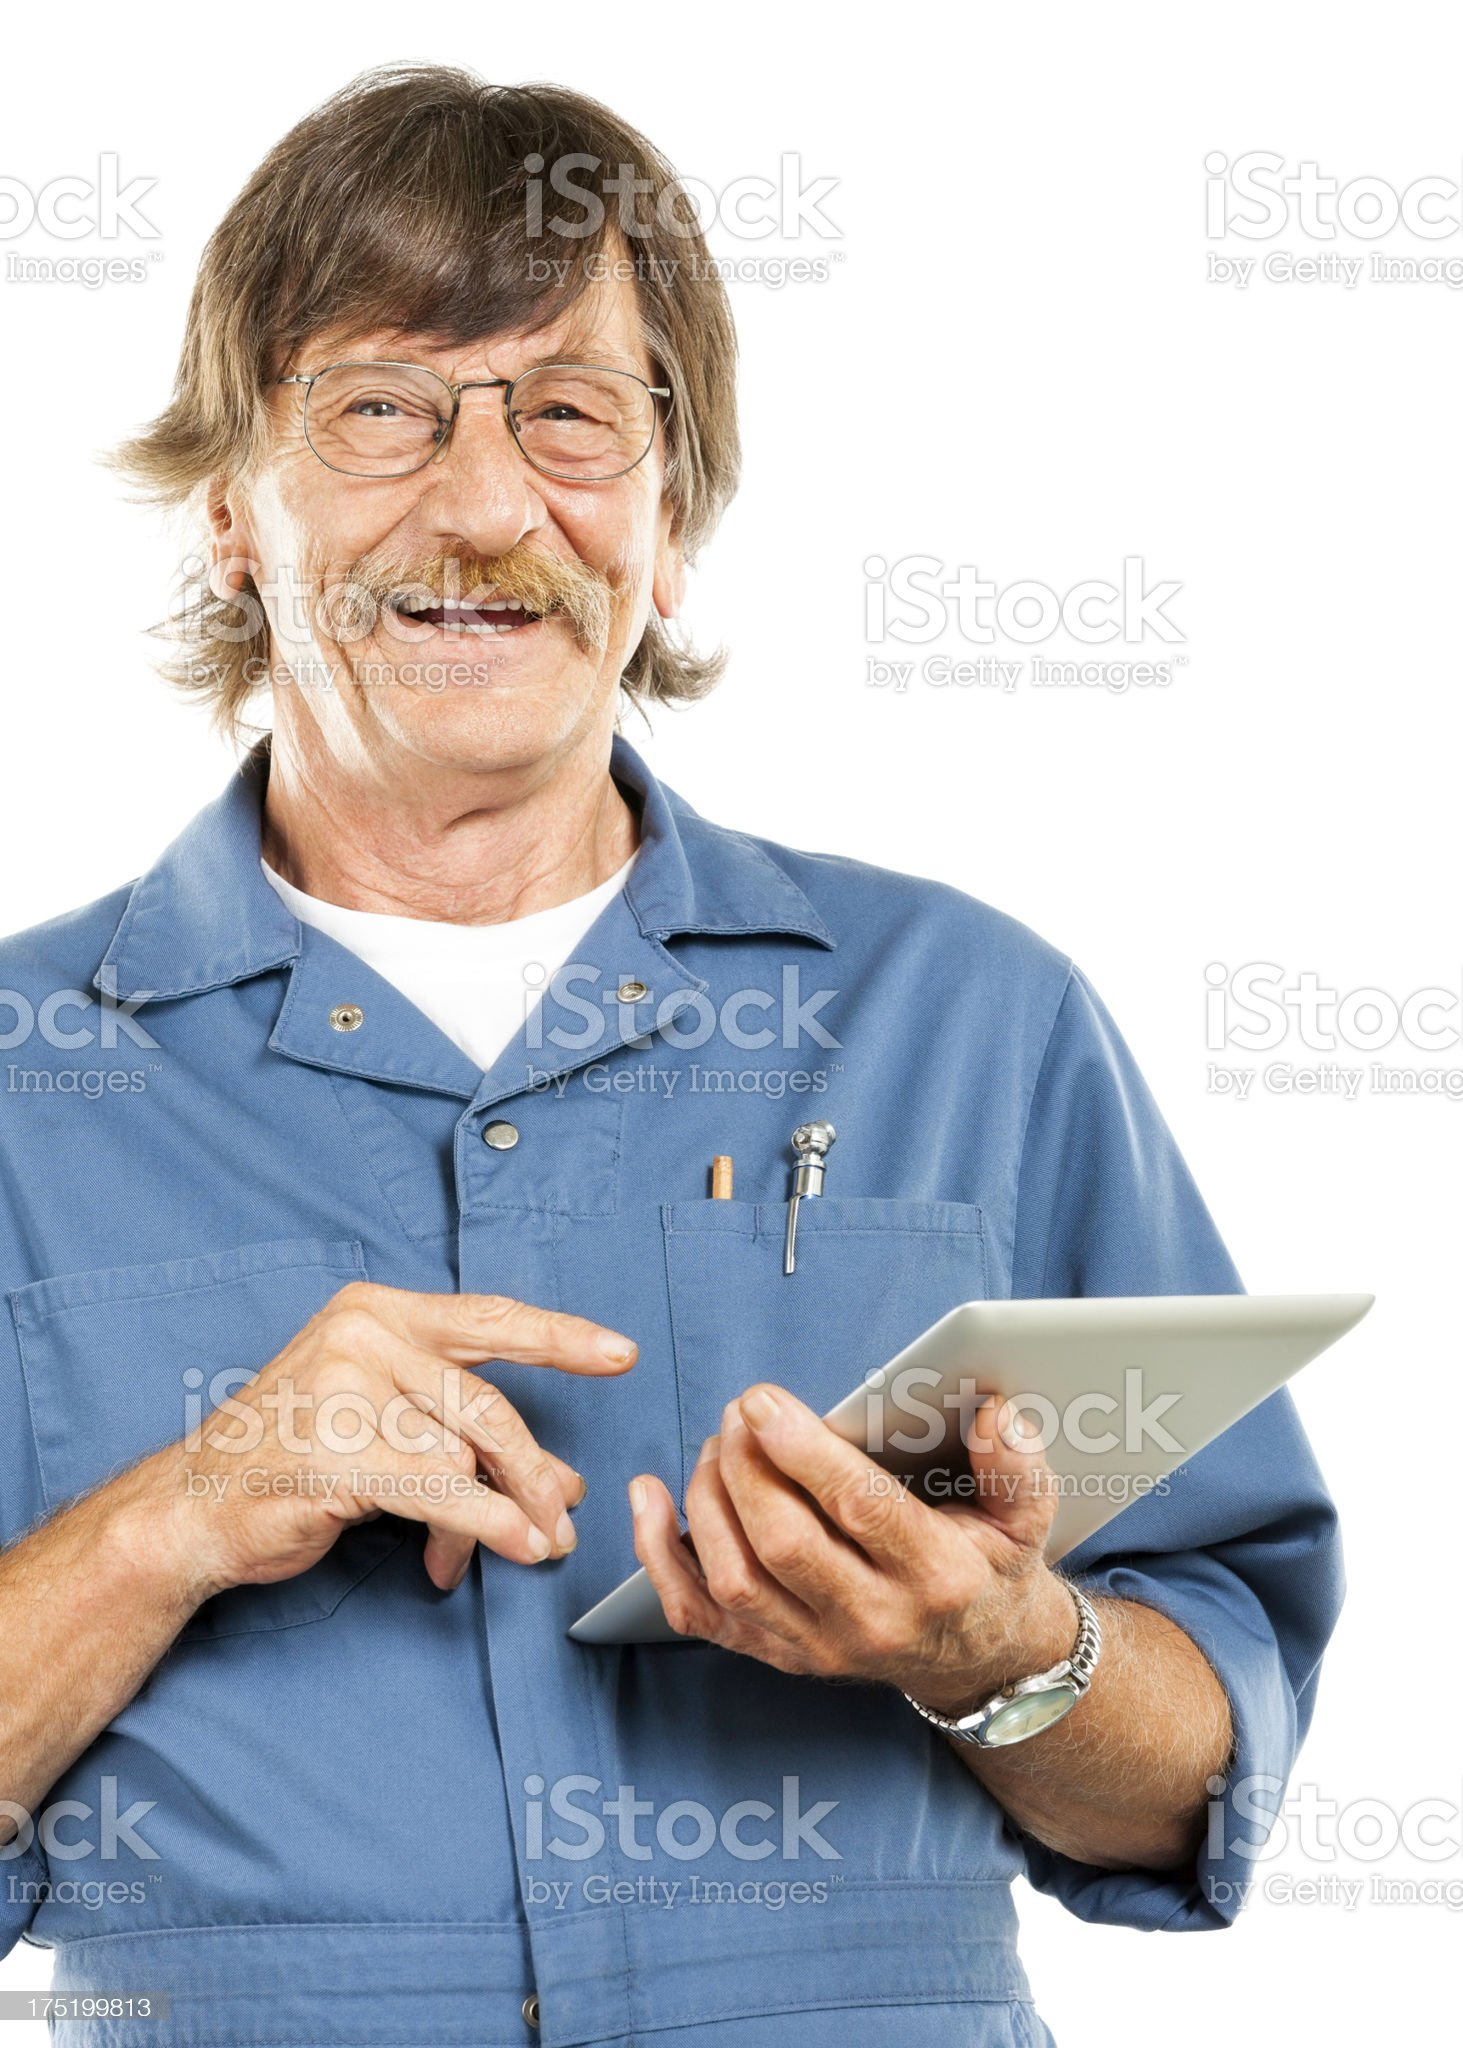 Mechanic Using a Tablet (Isolated on White) royalty-free stock photo